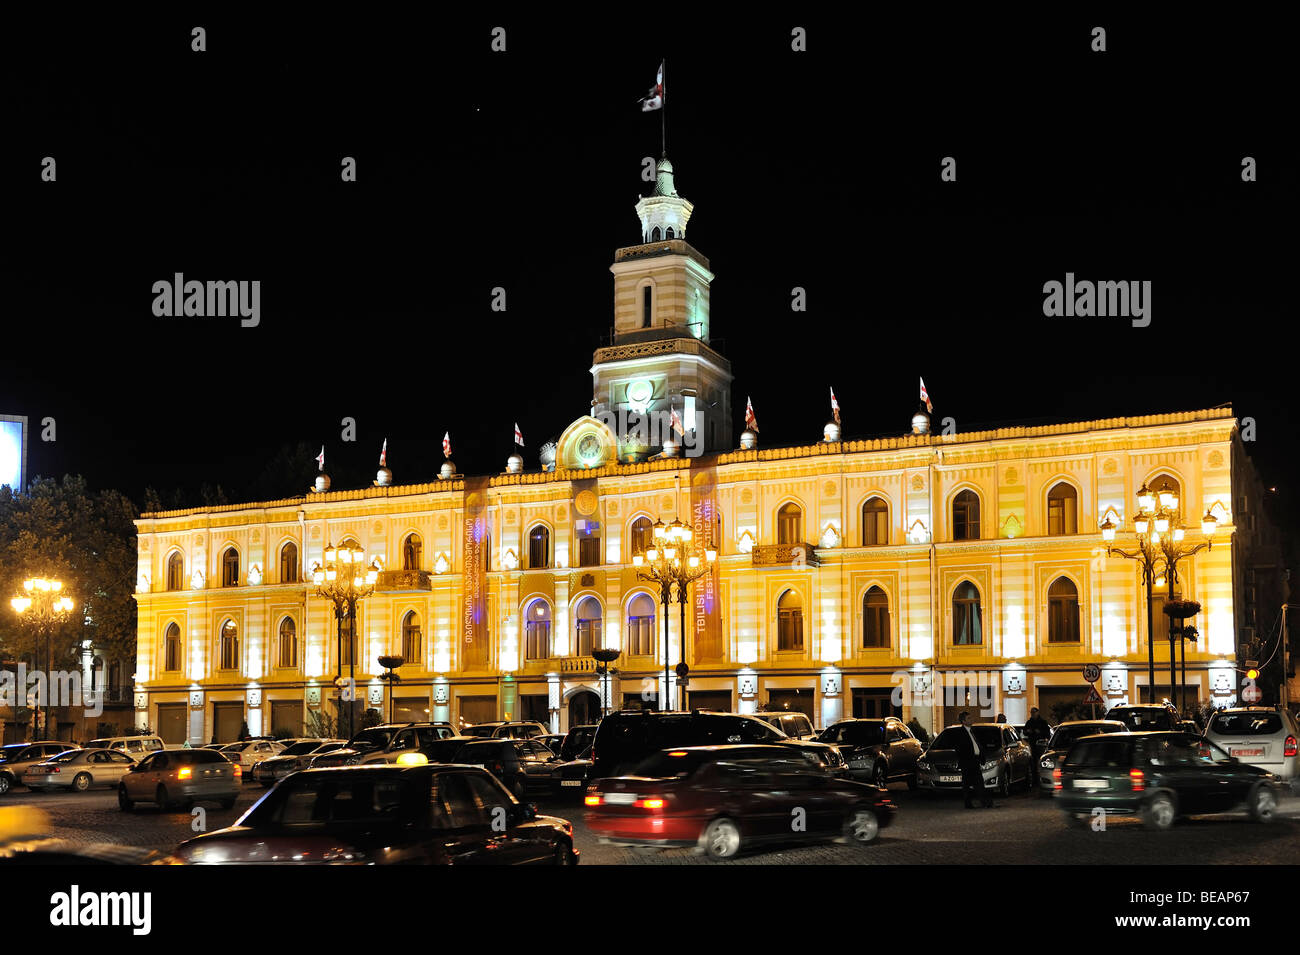 night shot of illuminated townhall or municipality of Tbilisi, Georgia Stock Photo